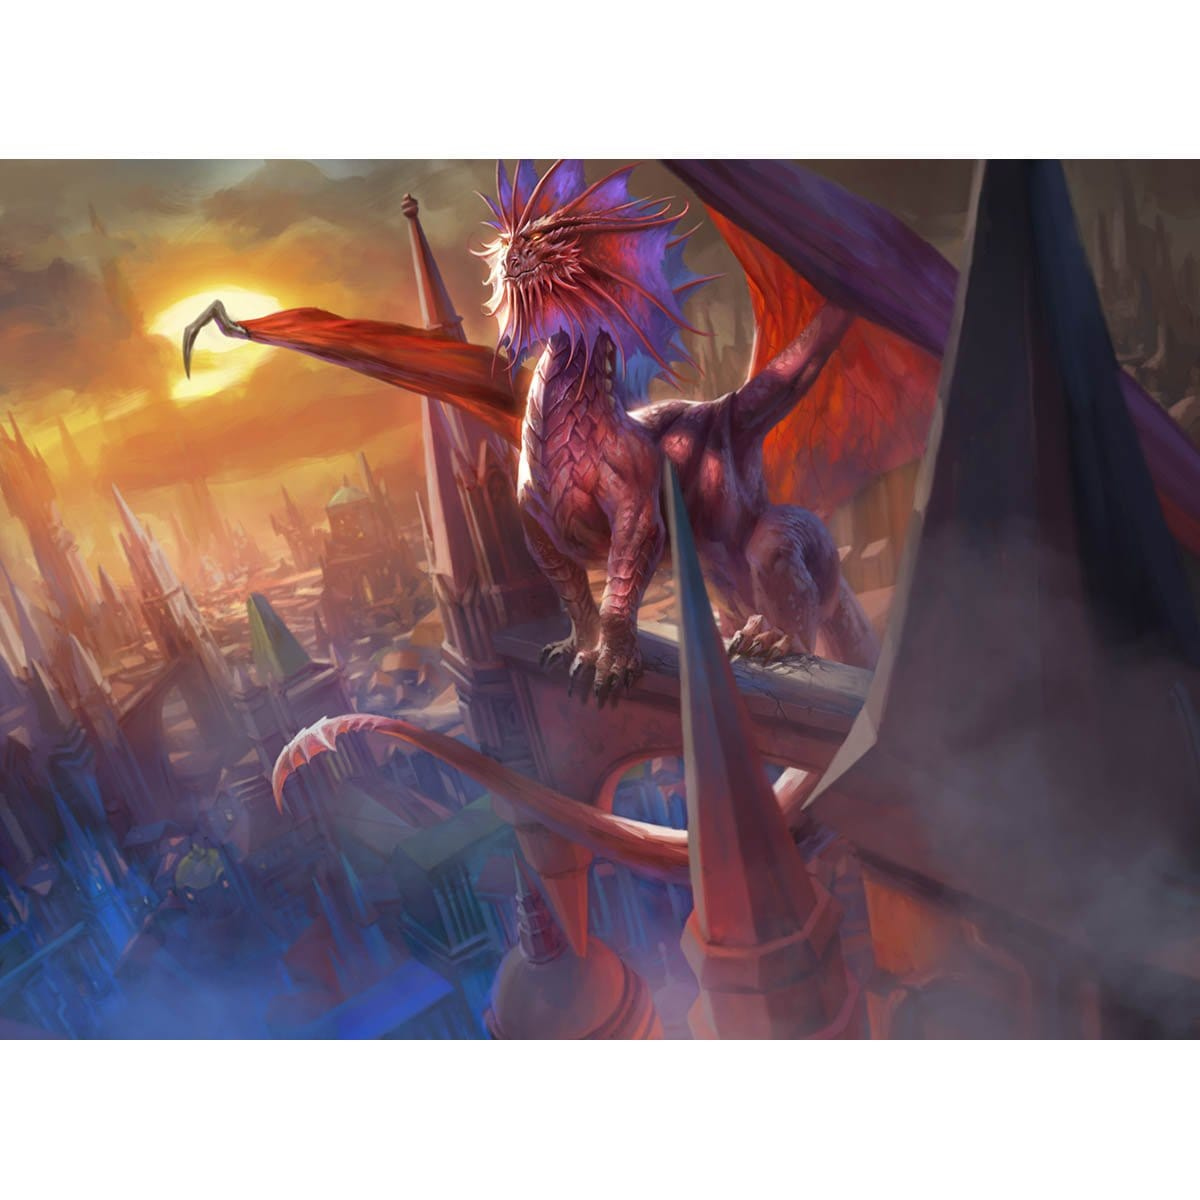 Niv-Mizzet, the Firemind Print - Print - Original Magic Art - Accessories for Magic the Gathering and other card games